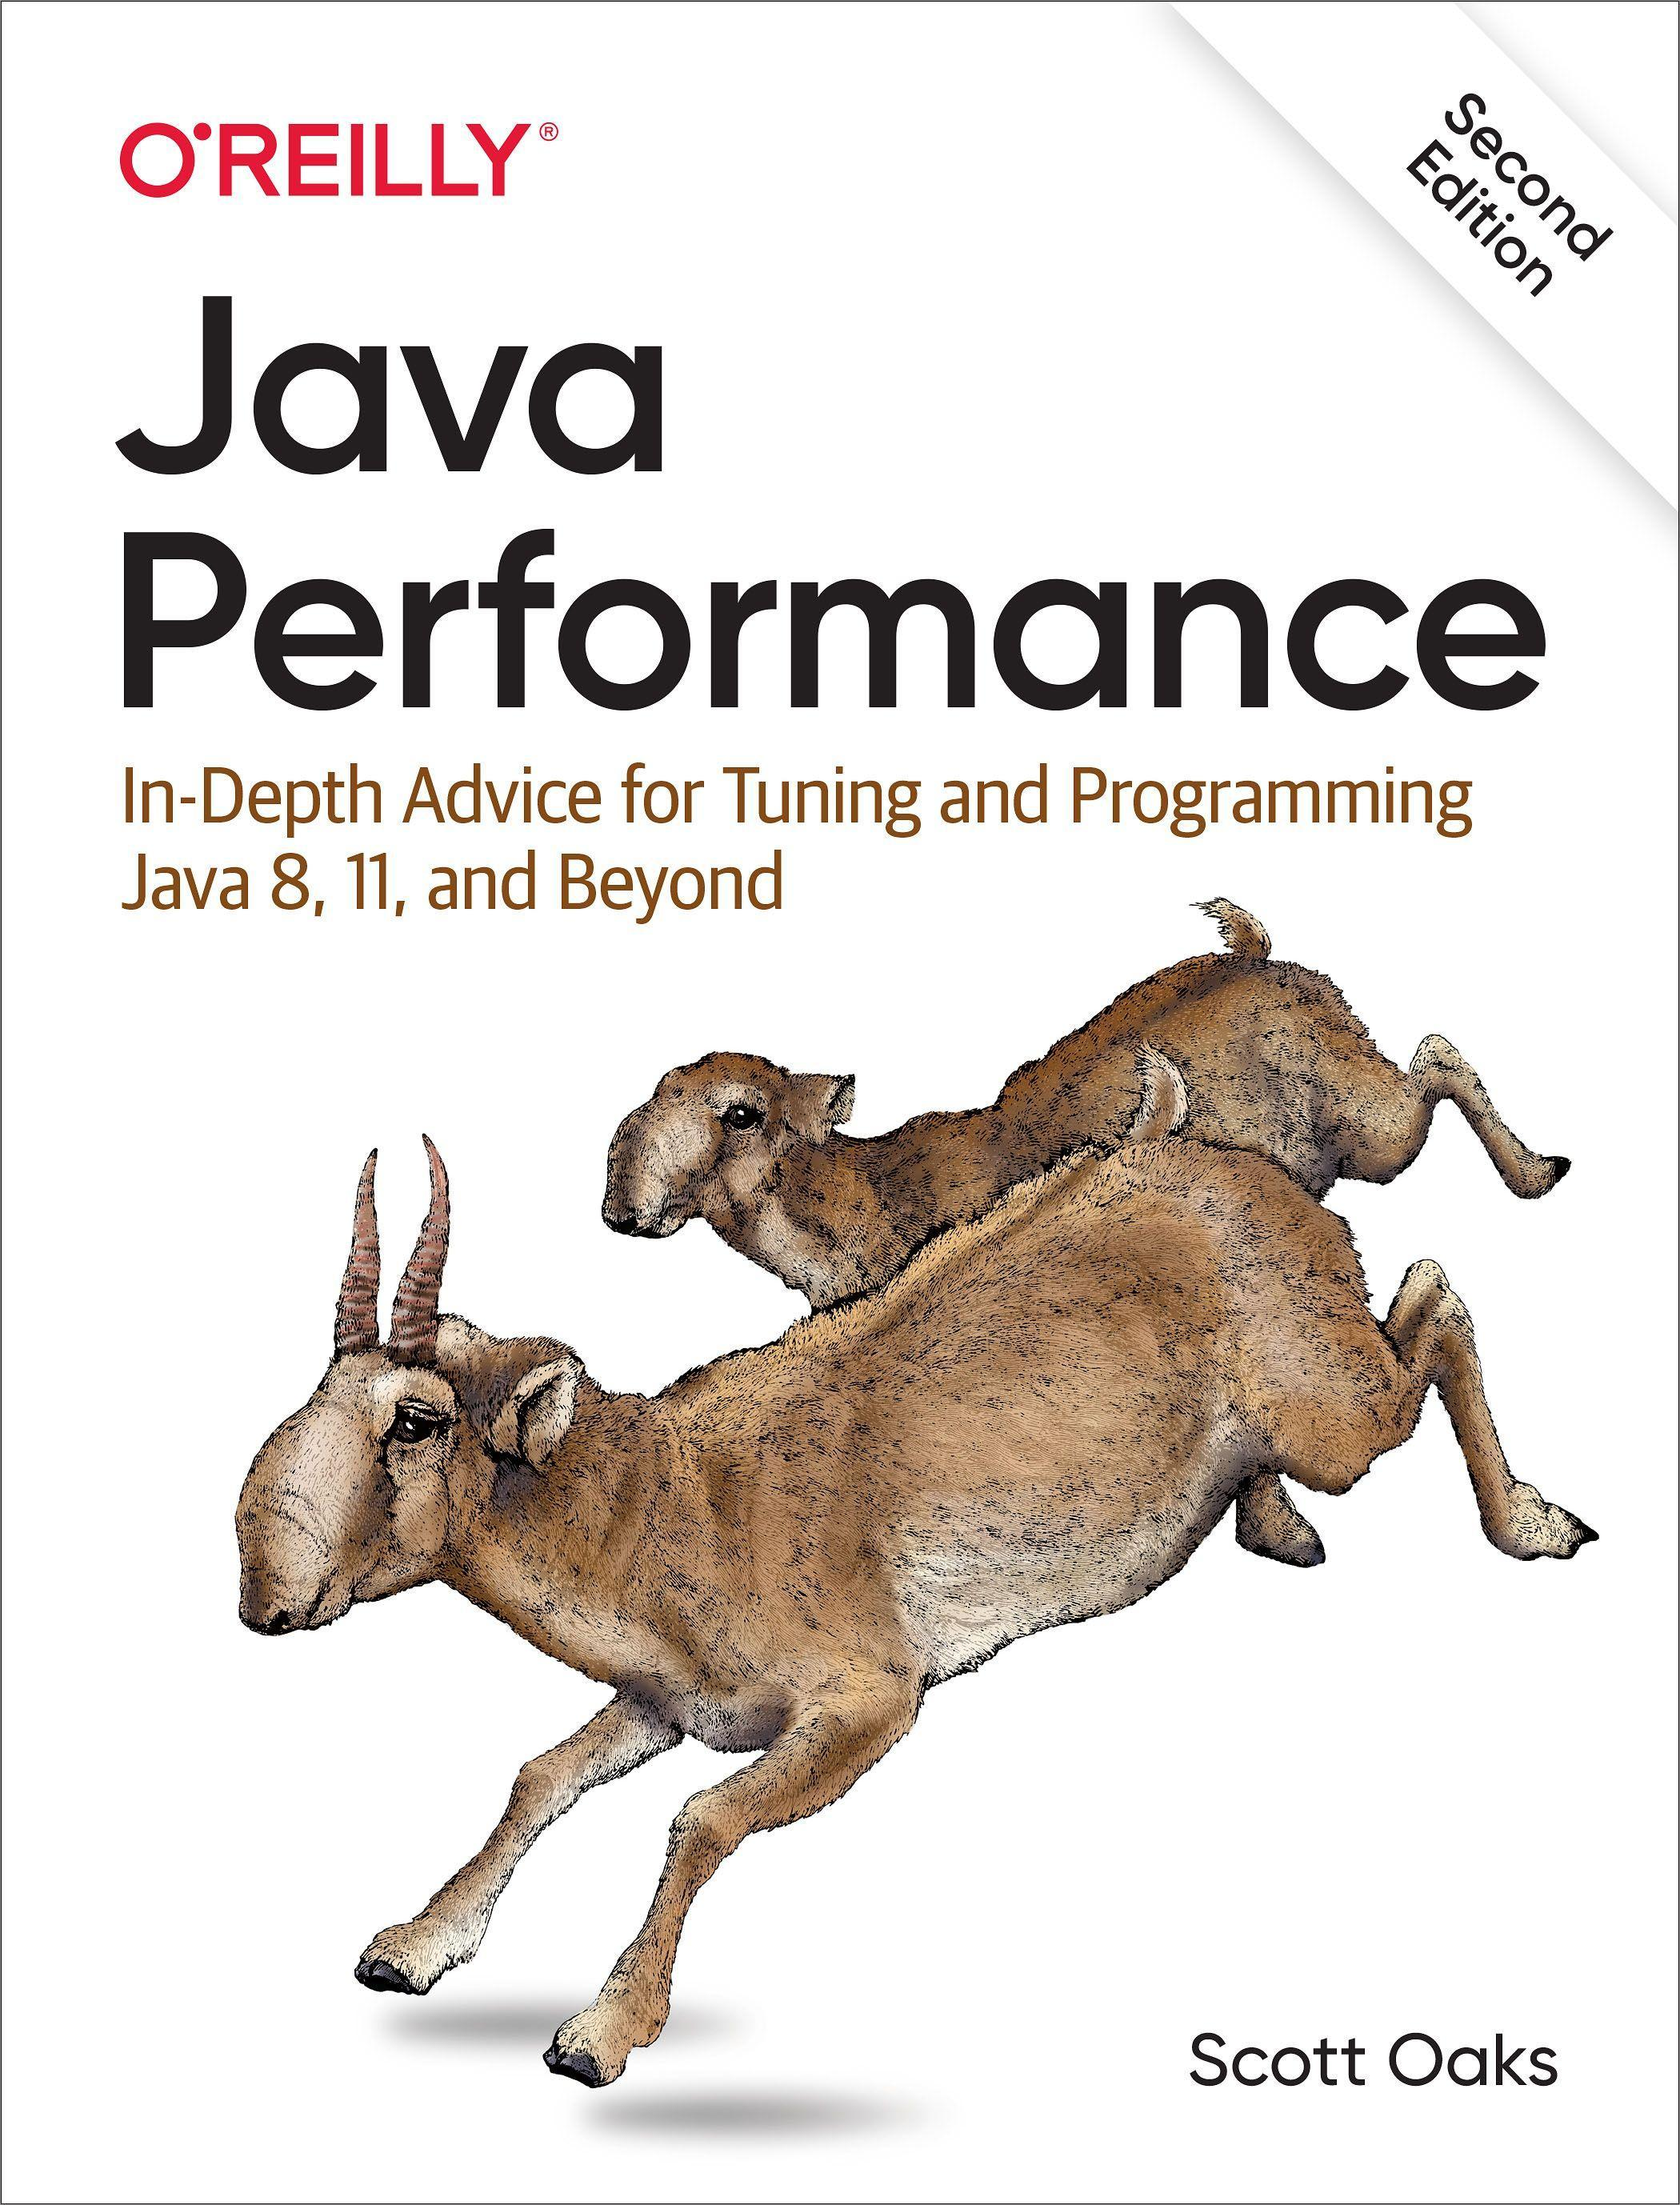 Java Performance  In-depth Advice for Tuning and Programming Java 8, 11, and Beyond  Scott Oaks  Taschenbuch  Englisch  2020